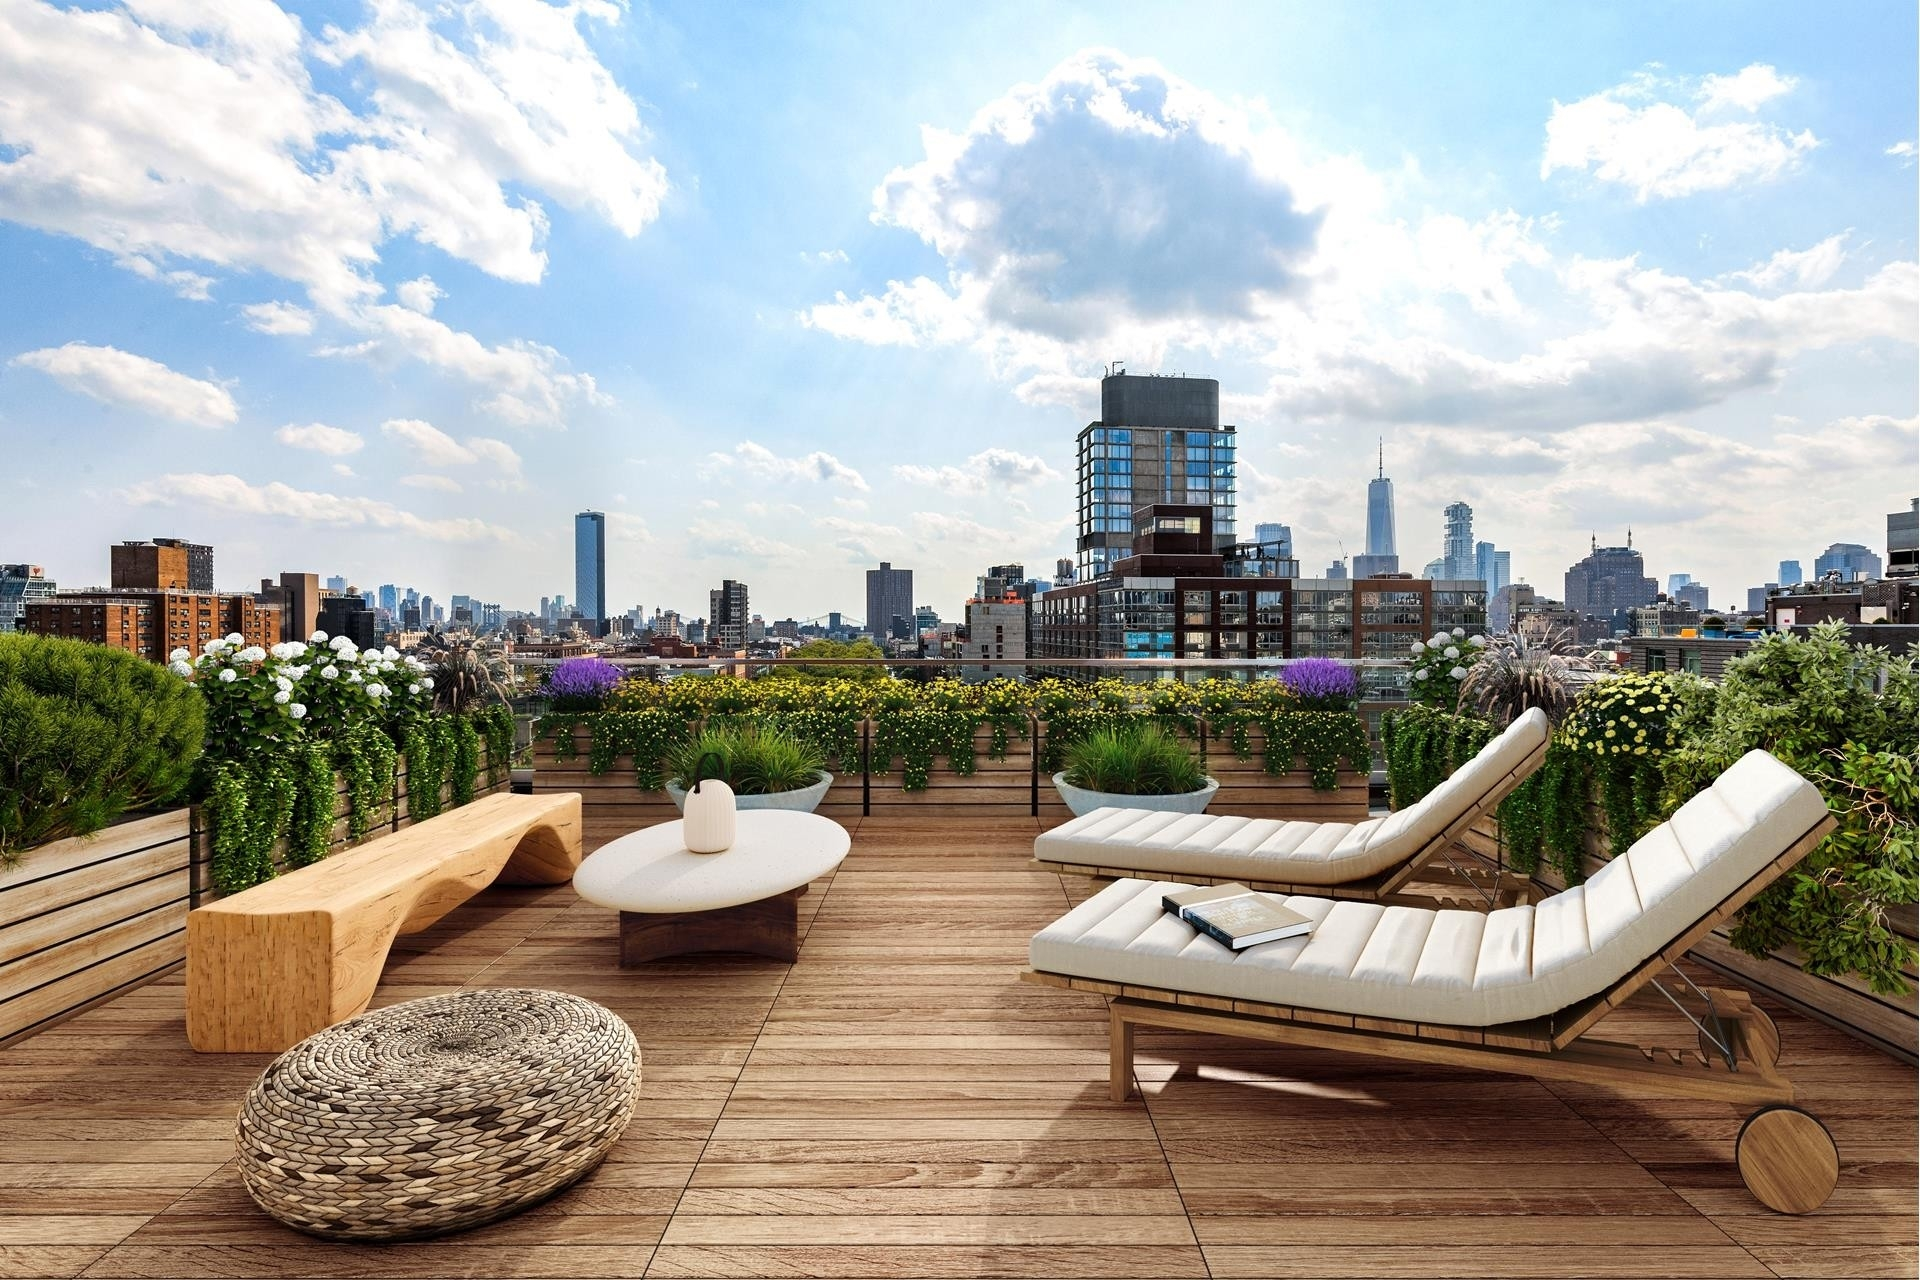 1. Condominiums for Sale at 32 E 1ST ST , PHBC East Village, New York, NY 10003